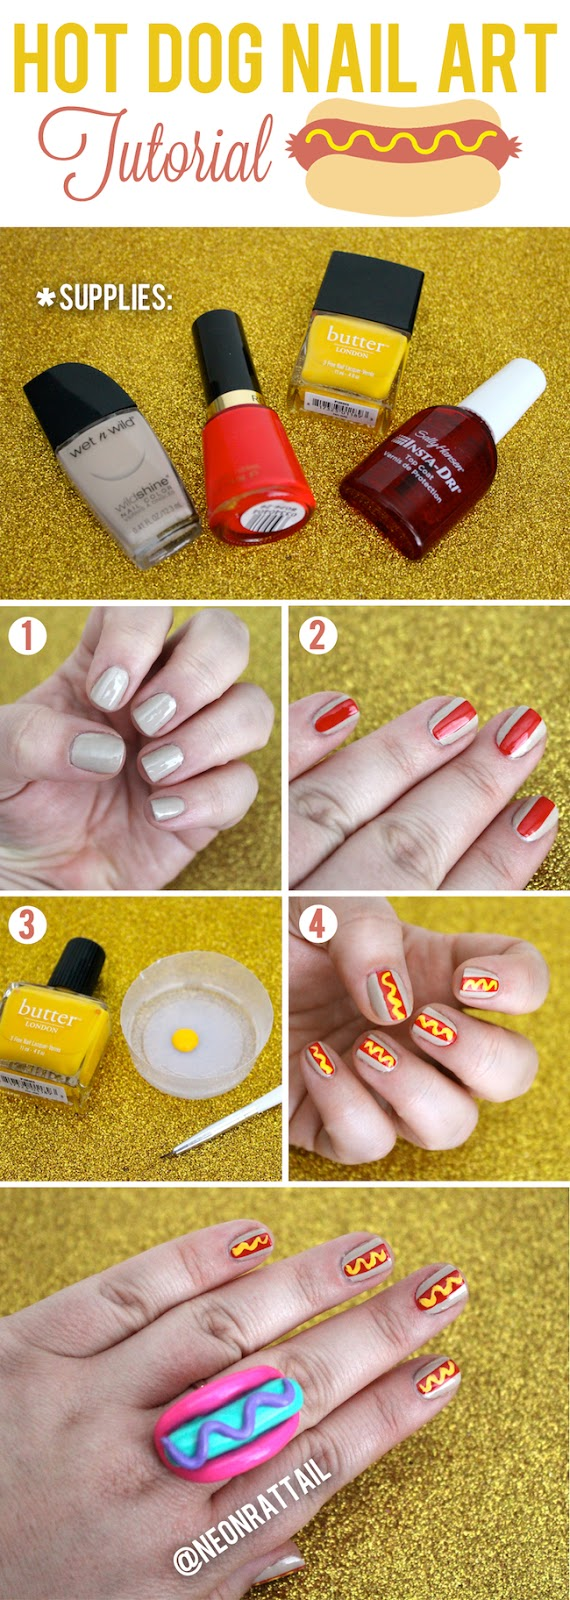 Beauty Hot Dog Nail Art Tutorial Neon Rattail